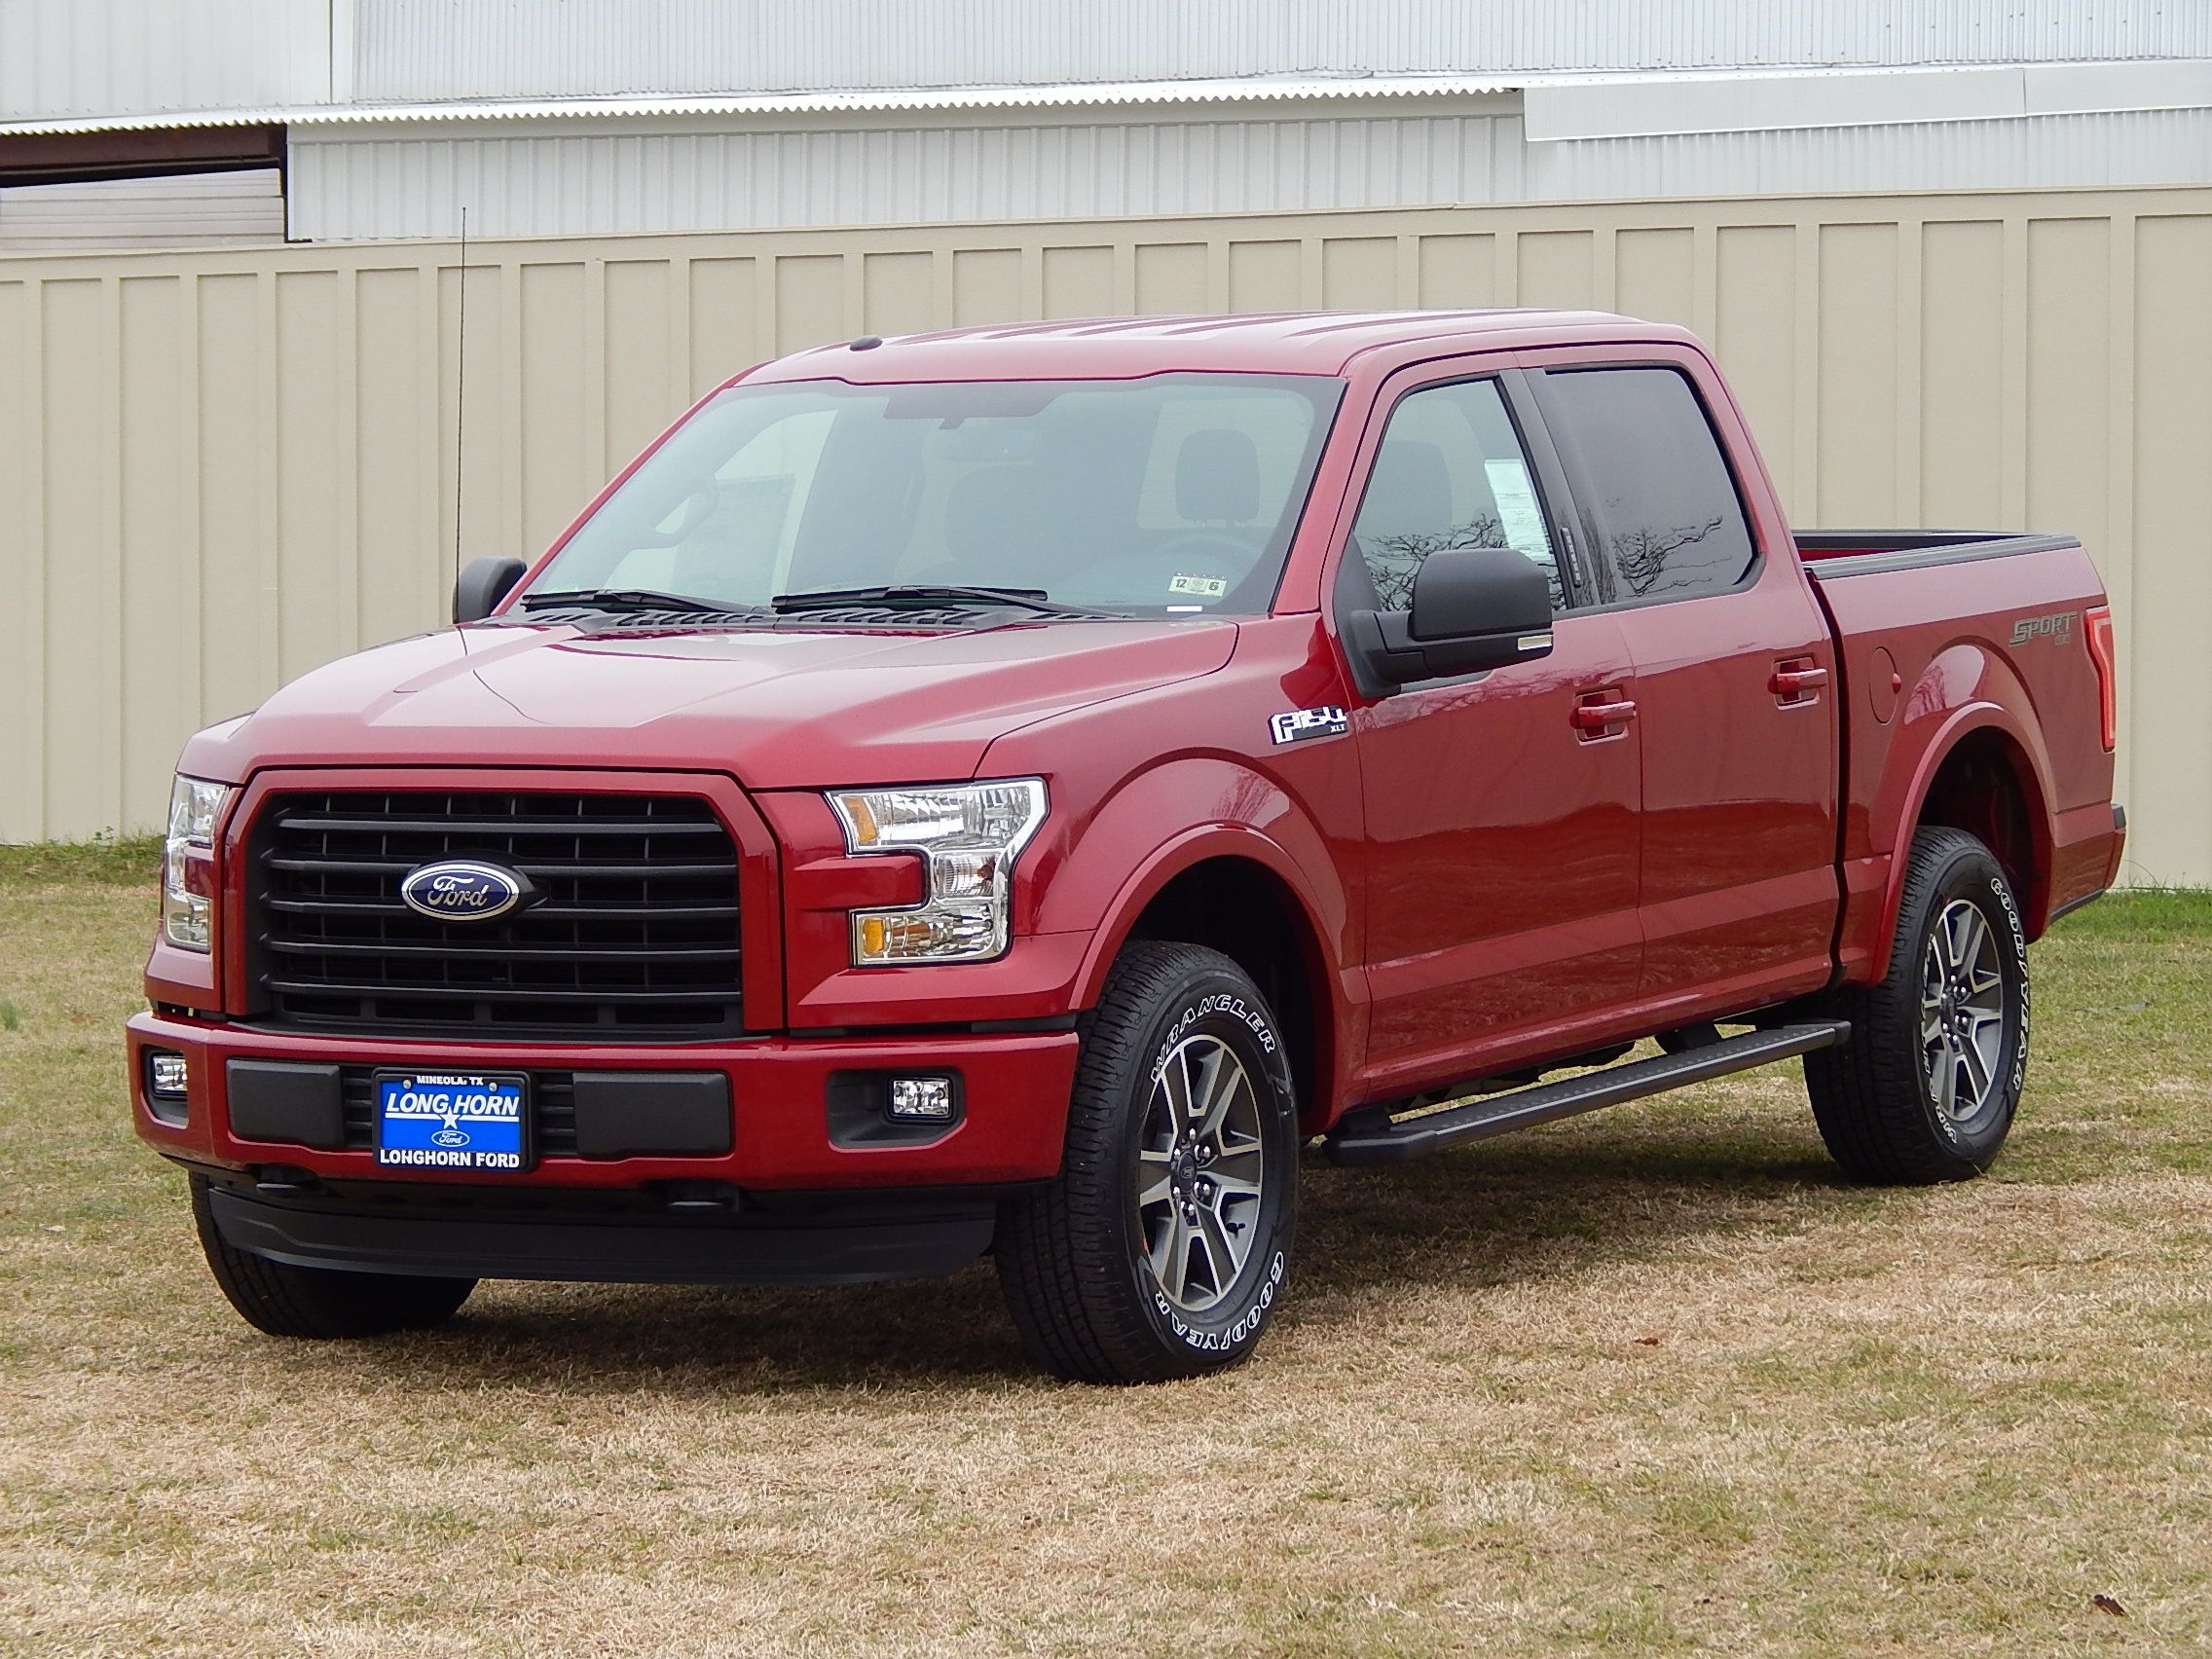 All New 2015 Ford F150 Xlt Supercrew 4x4 In Ruby Red Metallic F150